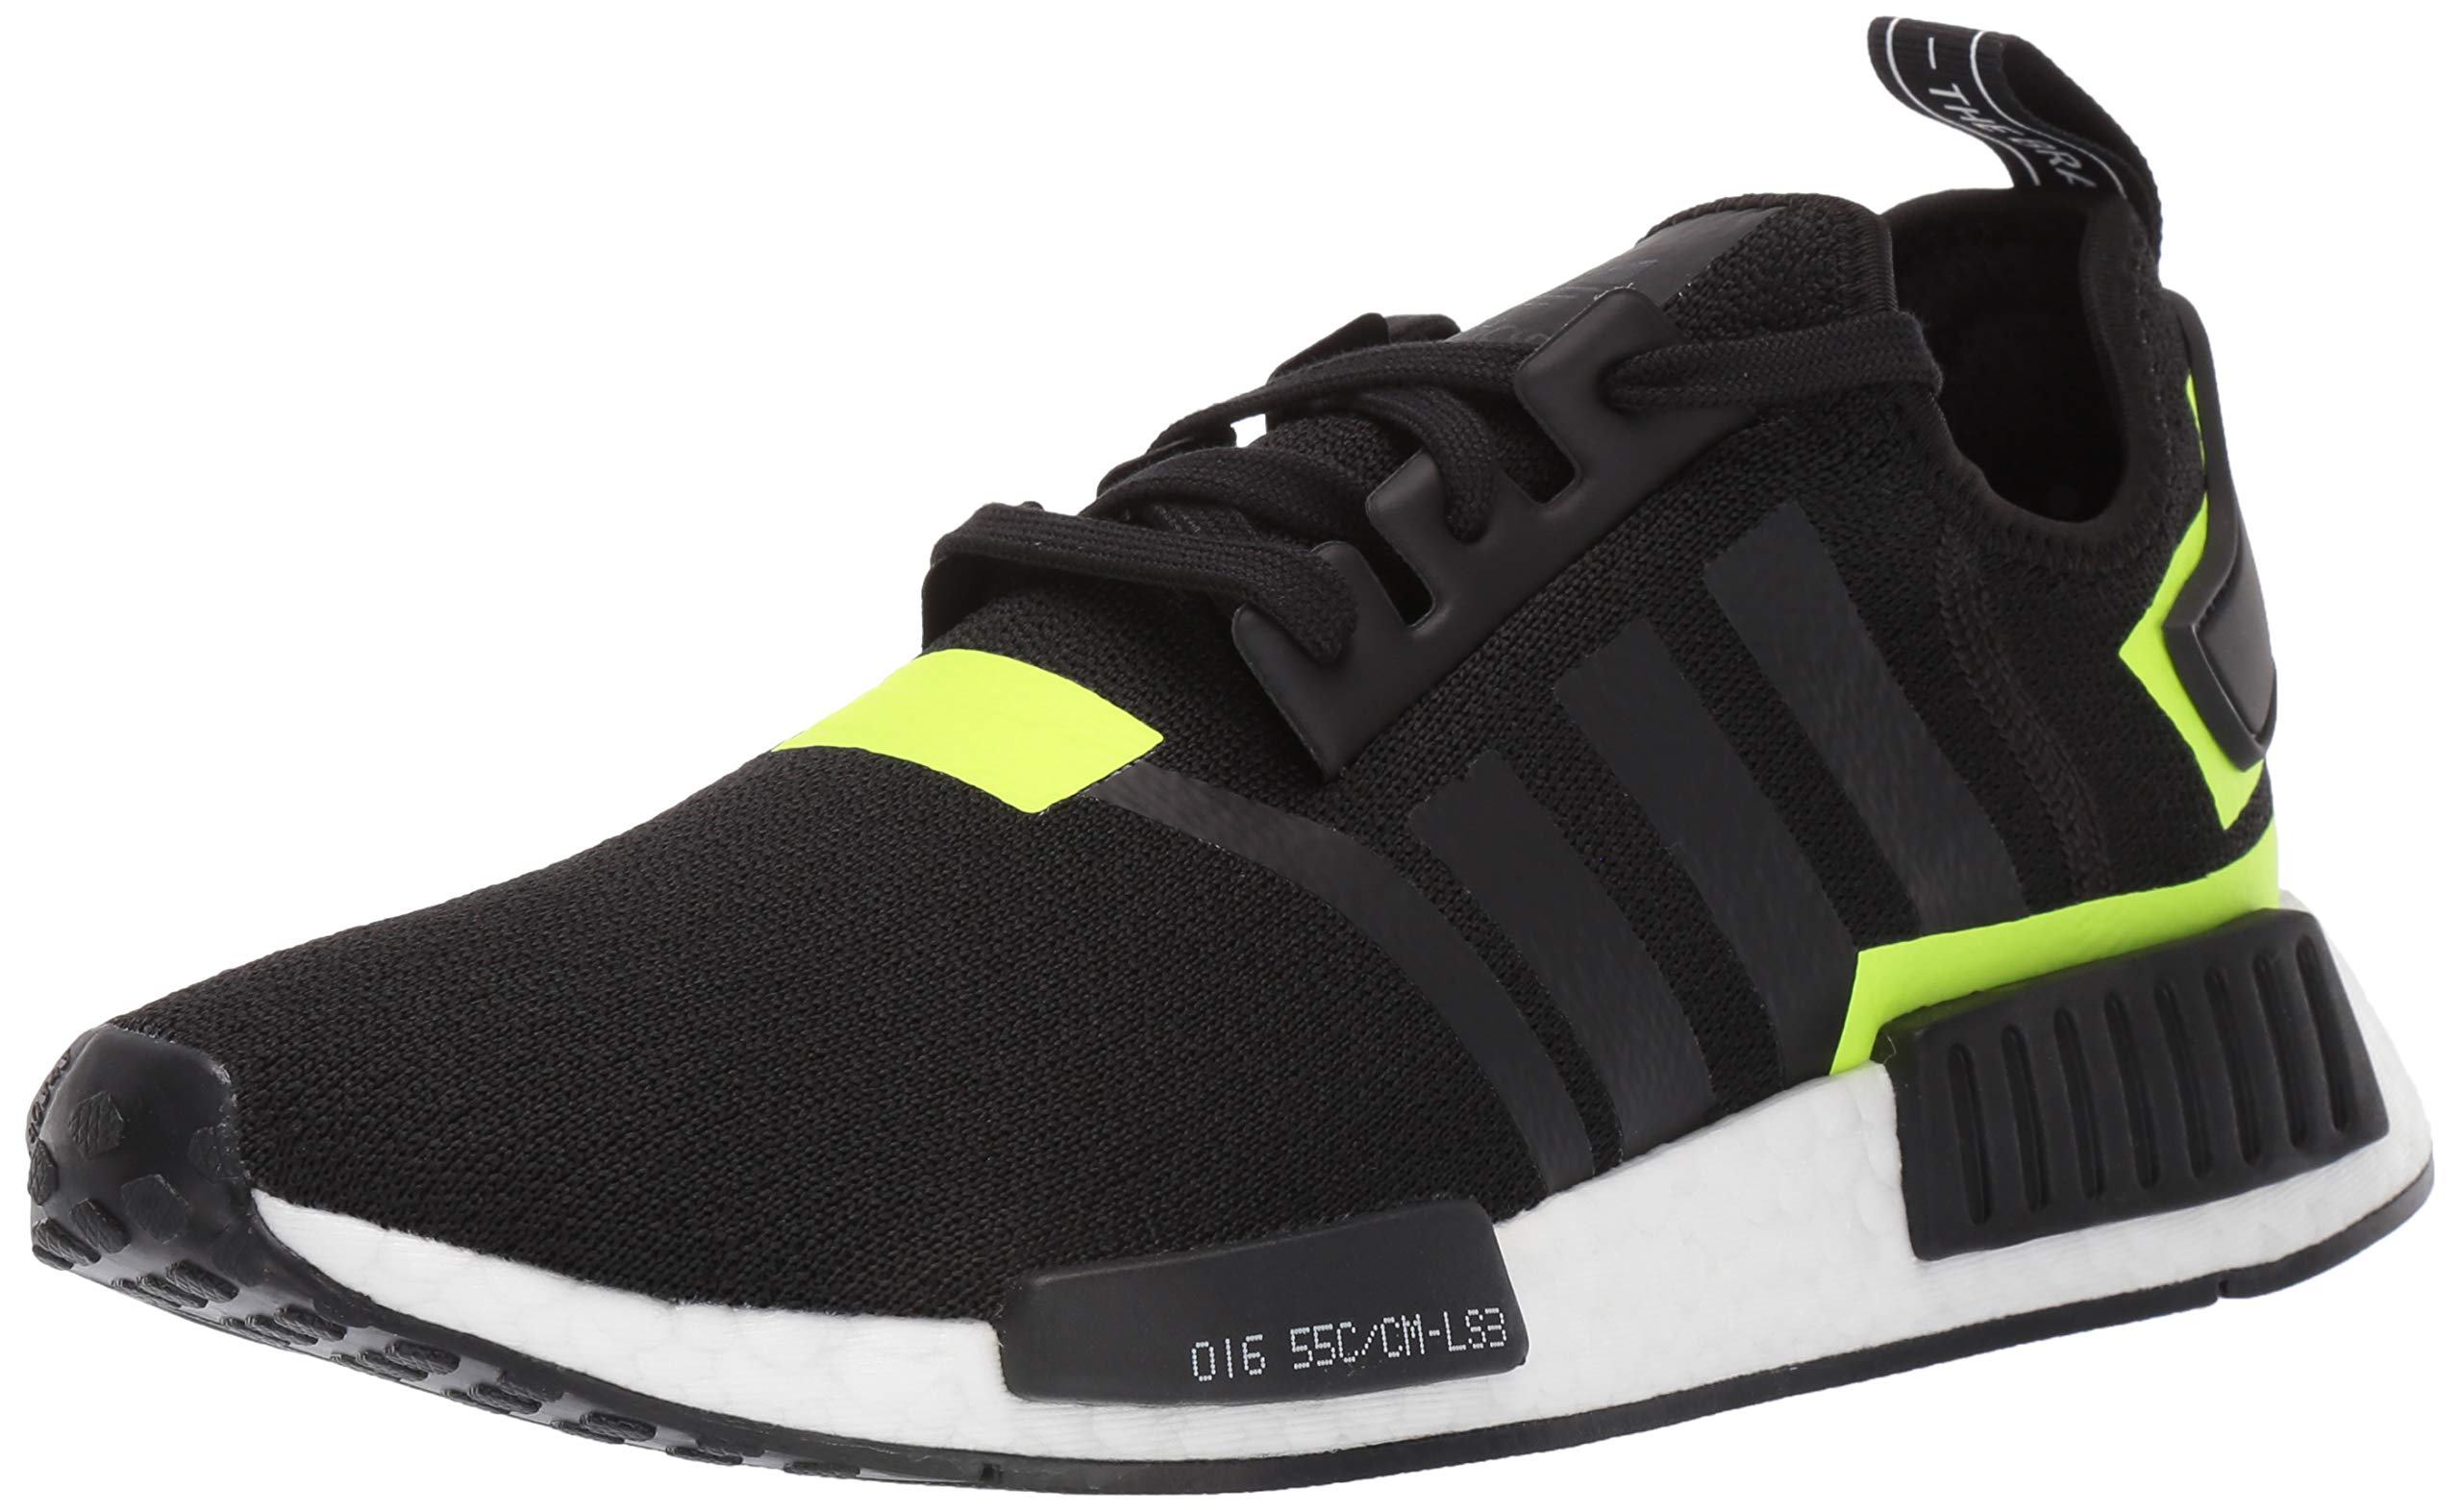 adidas Originals Men's NMD_R1 Running Shoe, Black/White 1, 4 M US by adidas Originals (Image #1)